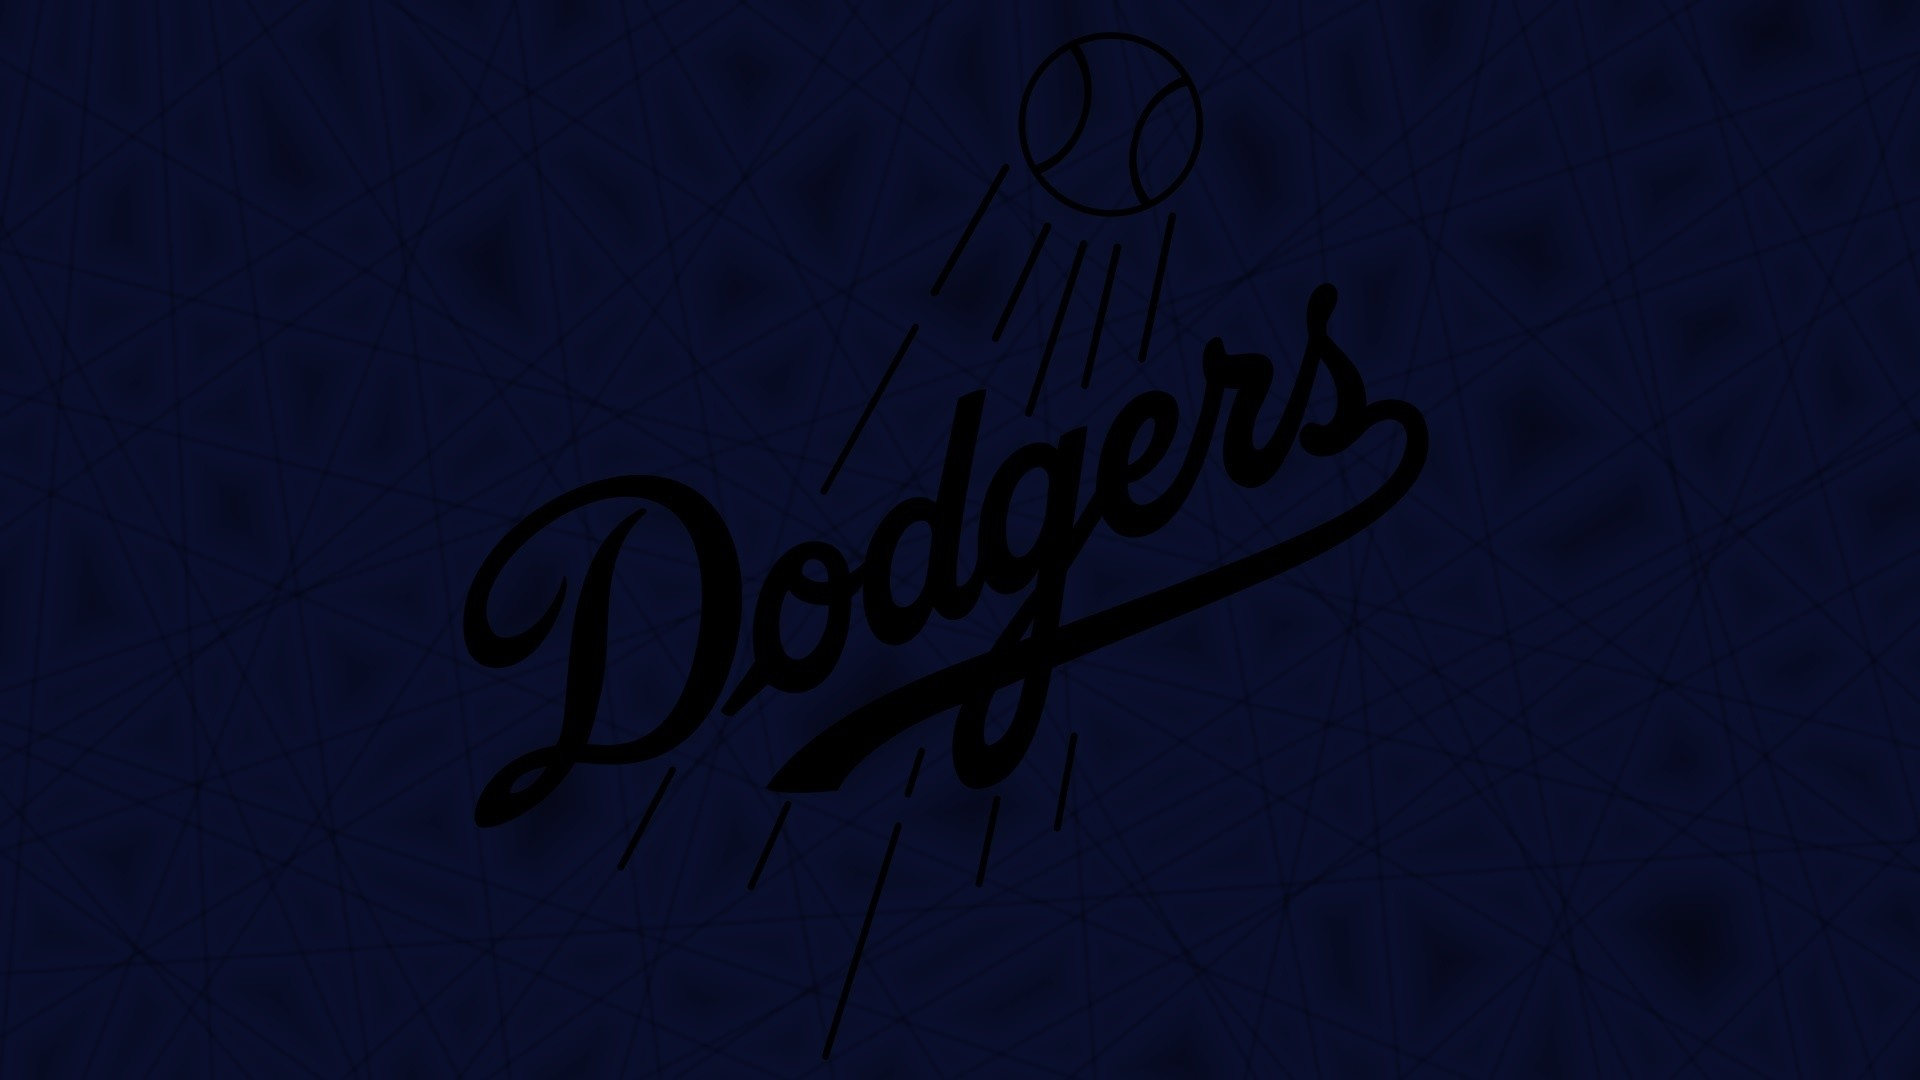 Wallpapers Dodgers JohnyWheels Source Background 65 Images